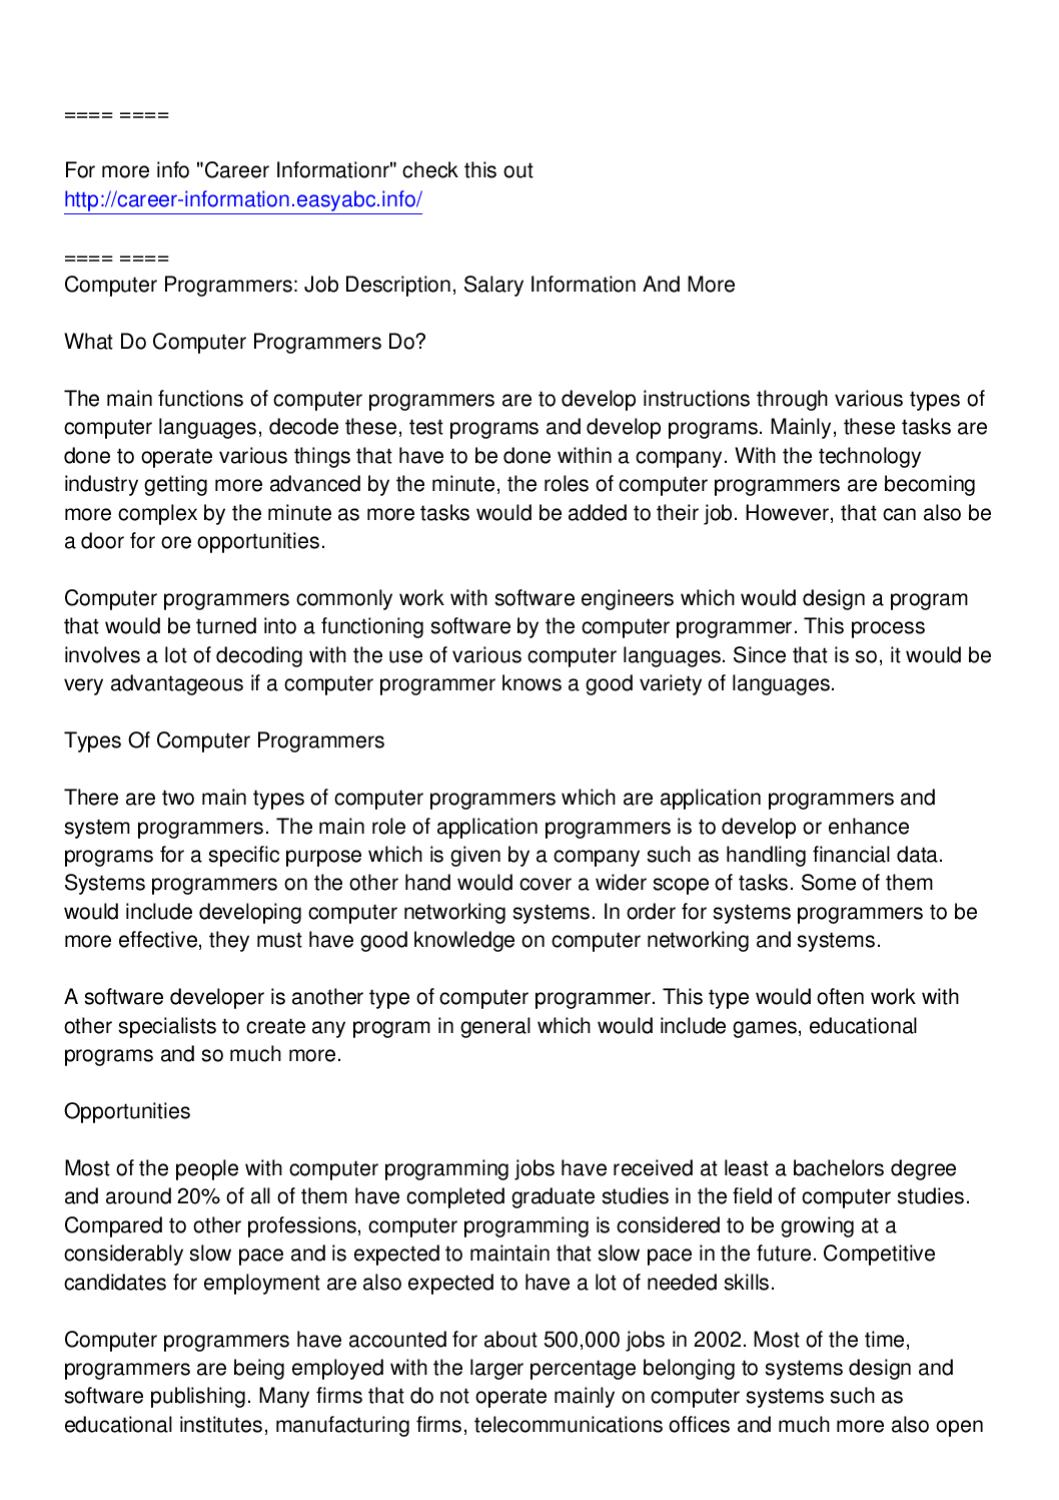 exceptionnel Computer Programmers: Job Description, Salary Information And More by Kevin  Rossignol - issuu